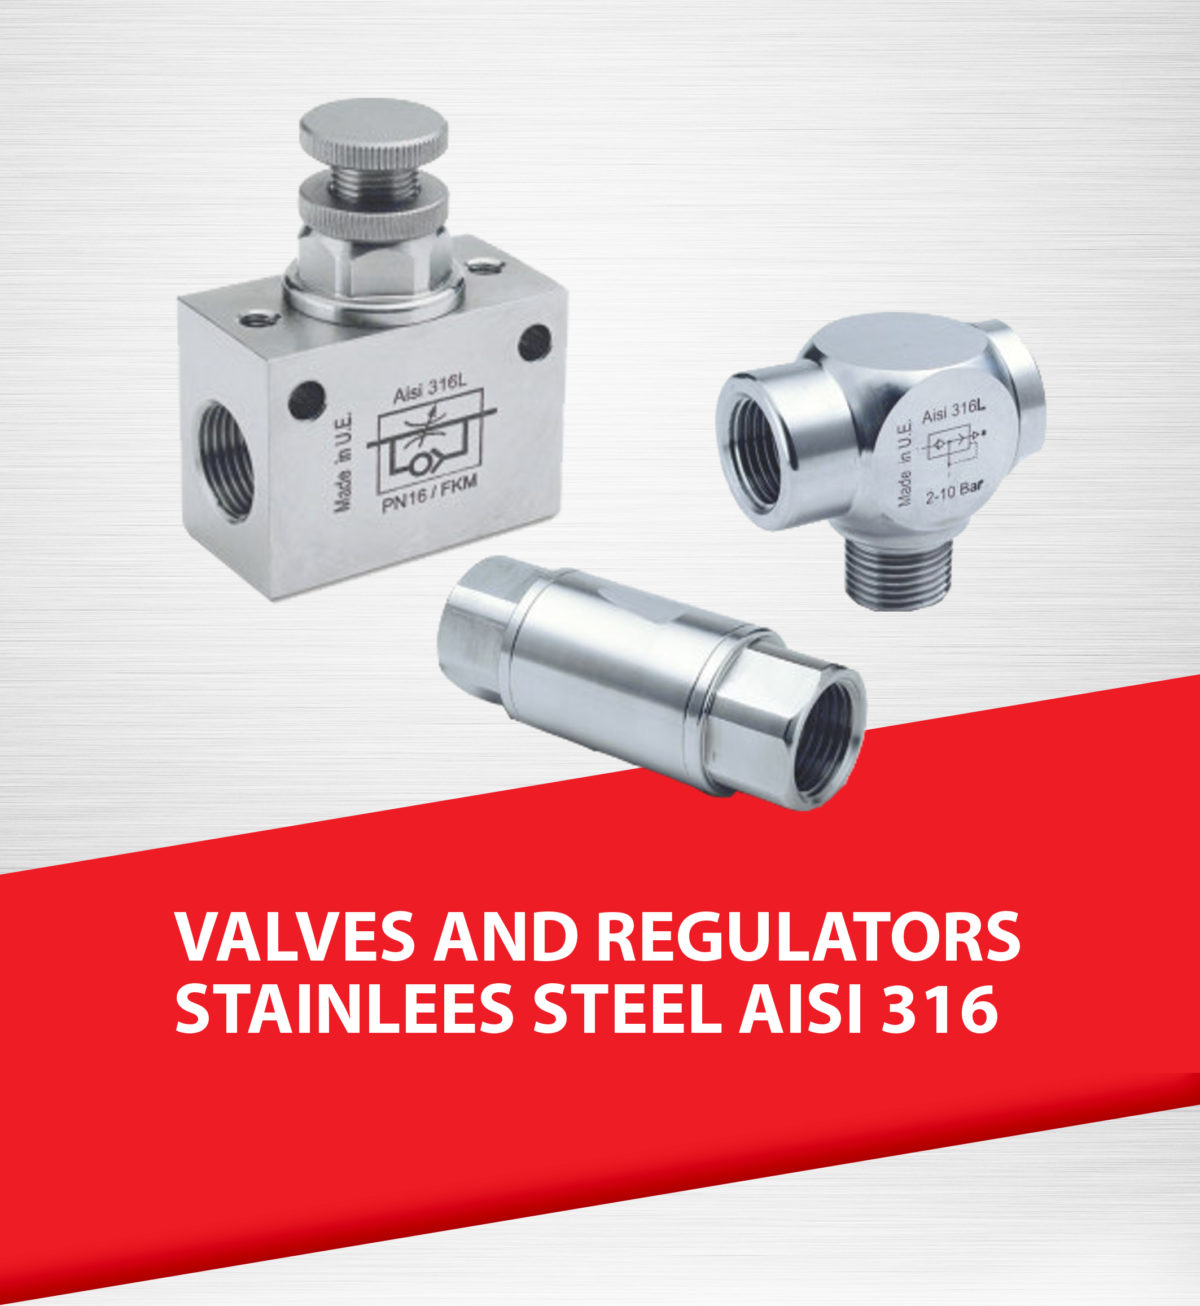 Valves and Regulators stainless steel AISI 316